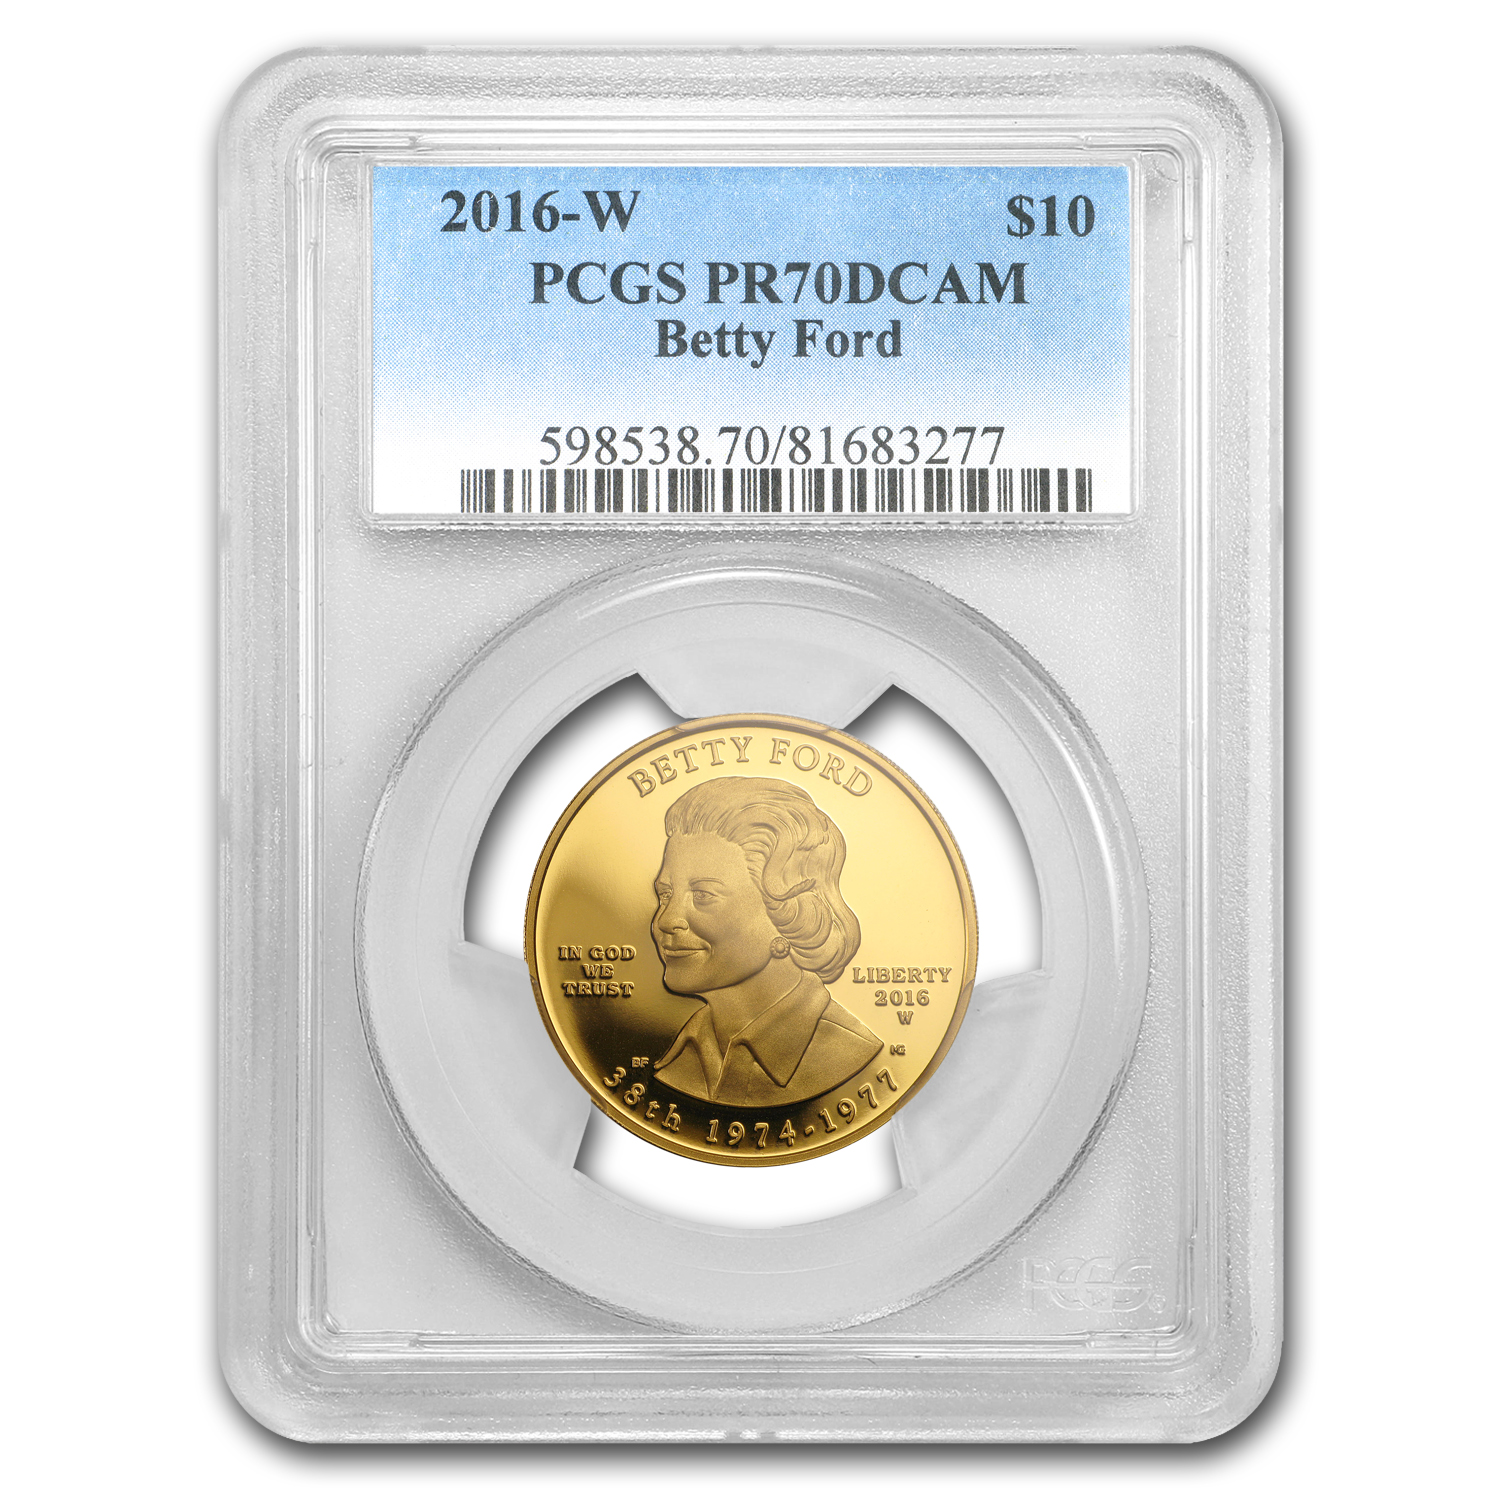 2016-W 1/2 oz Proof Gold Betty Ford PR-70 PCGS